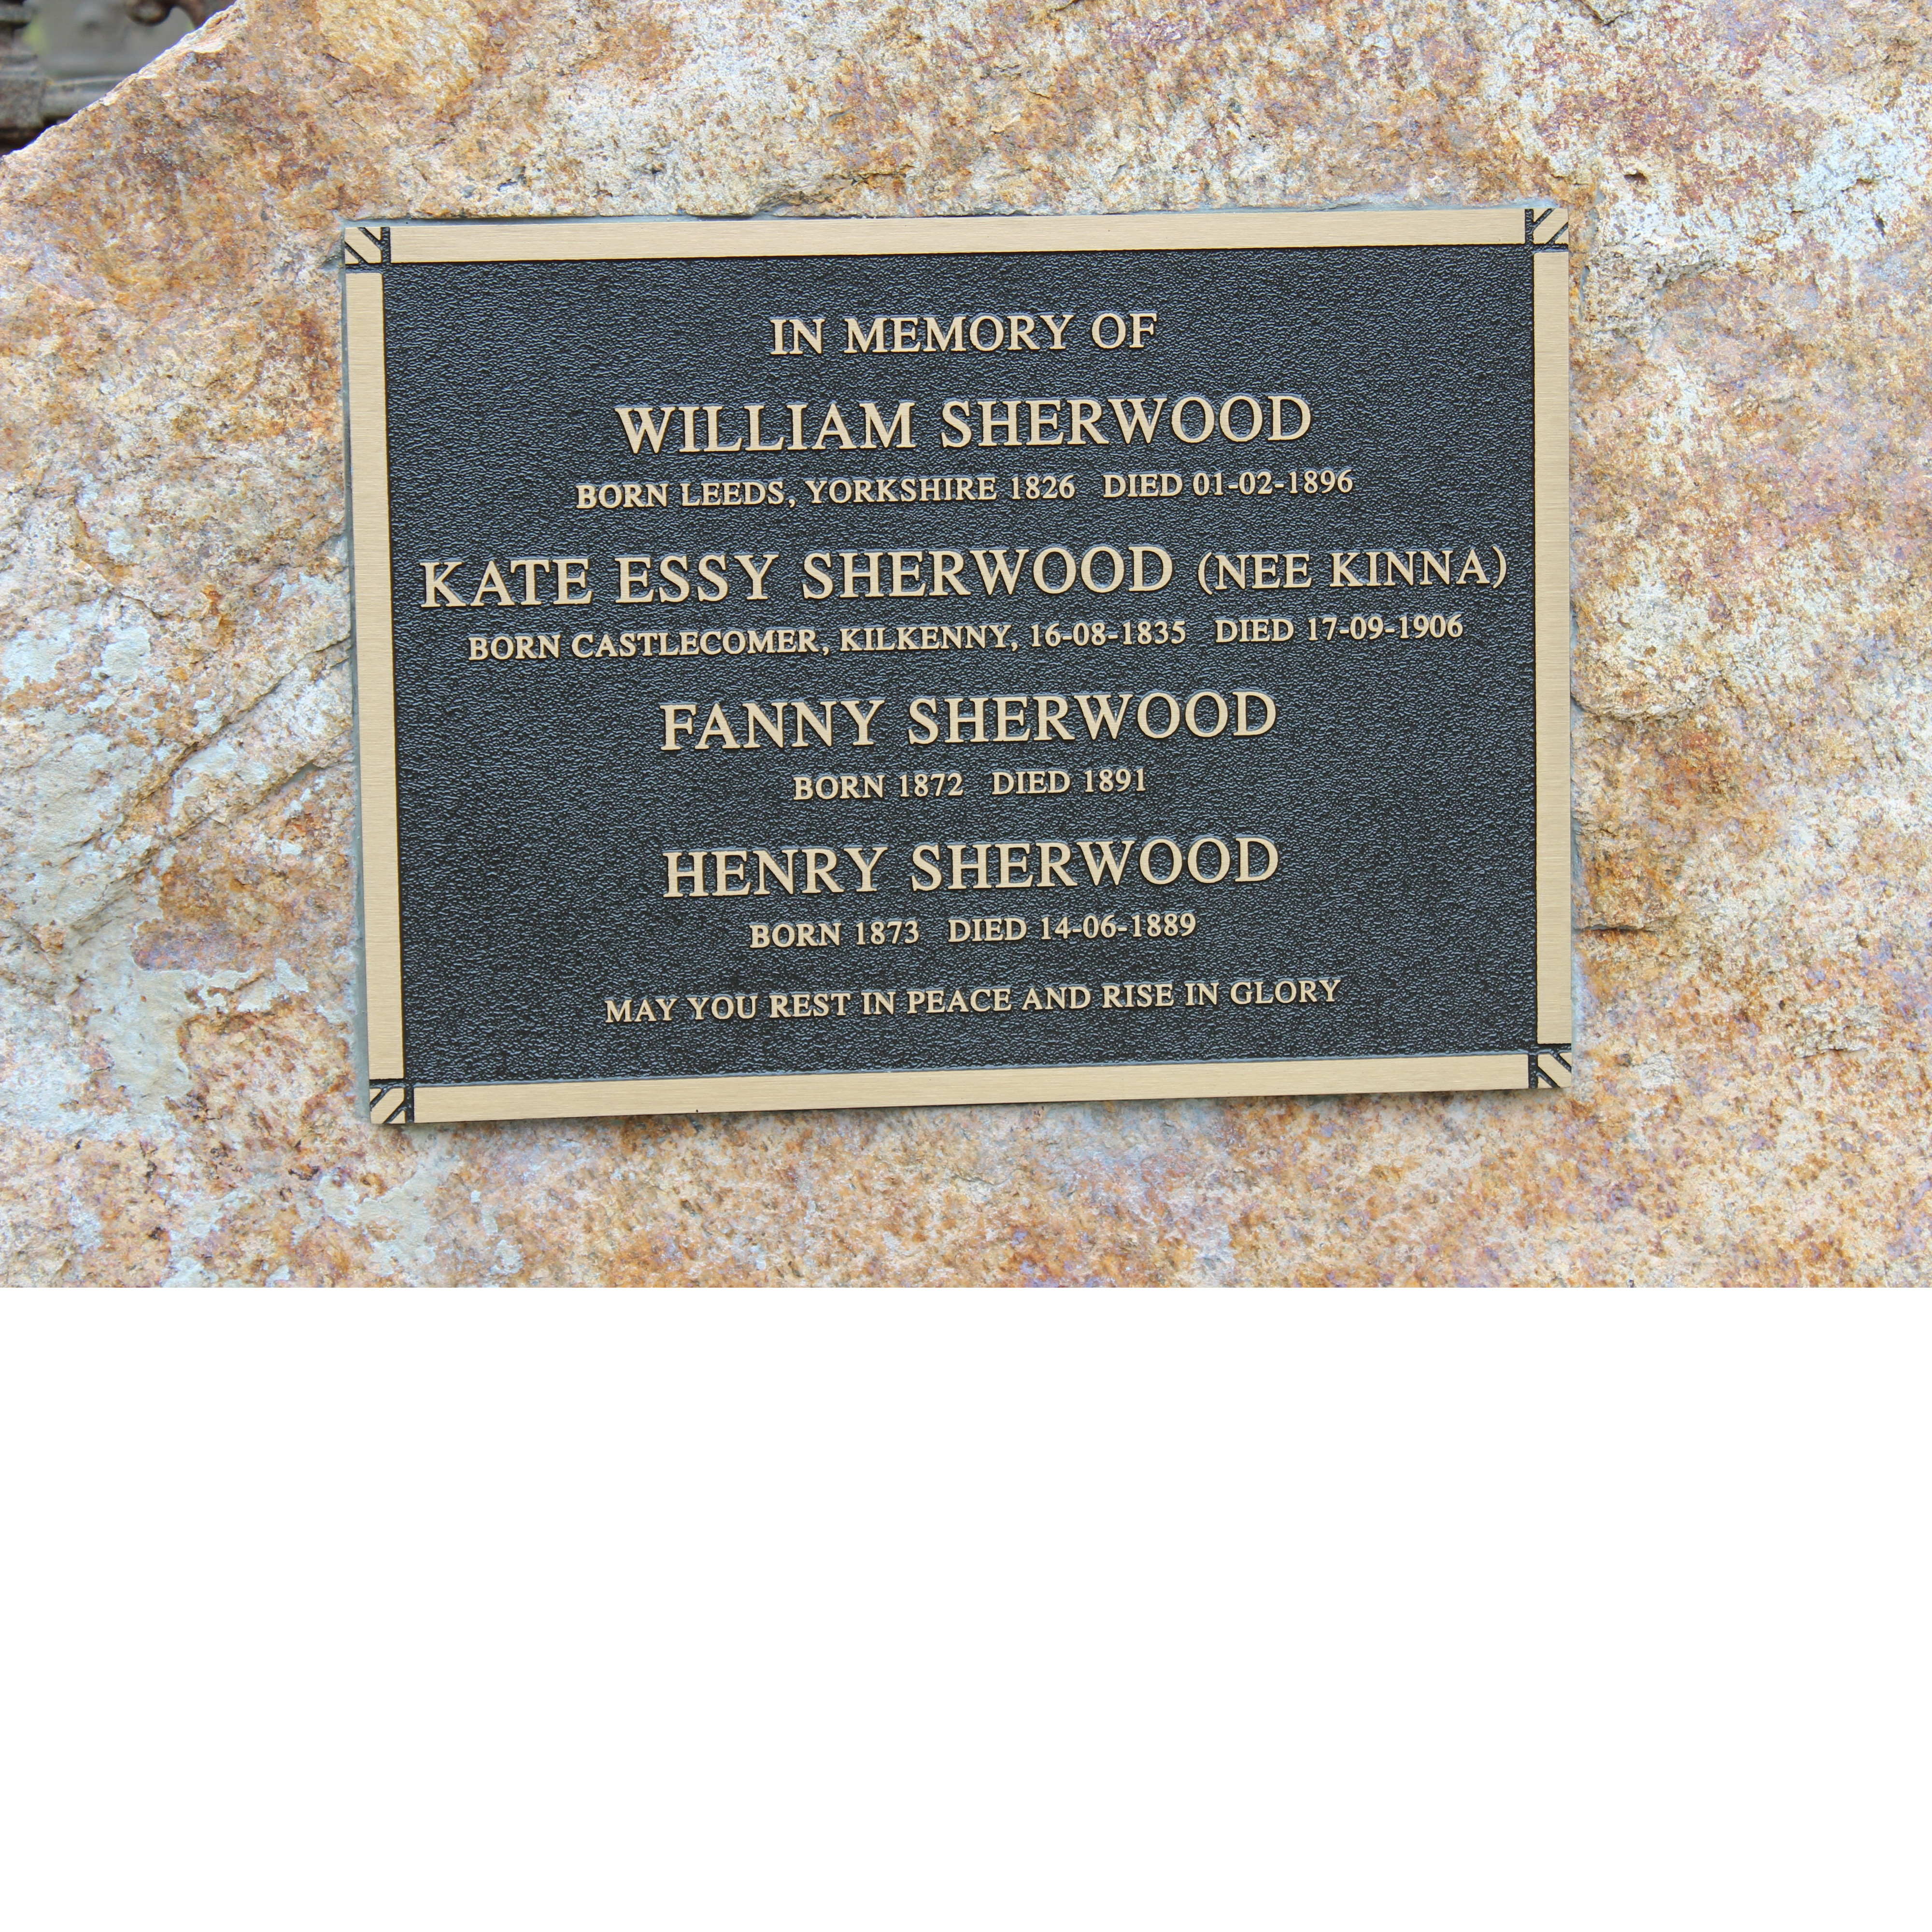 William Sherwood